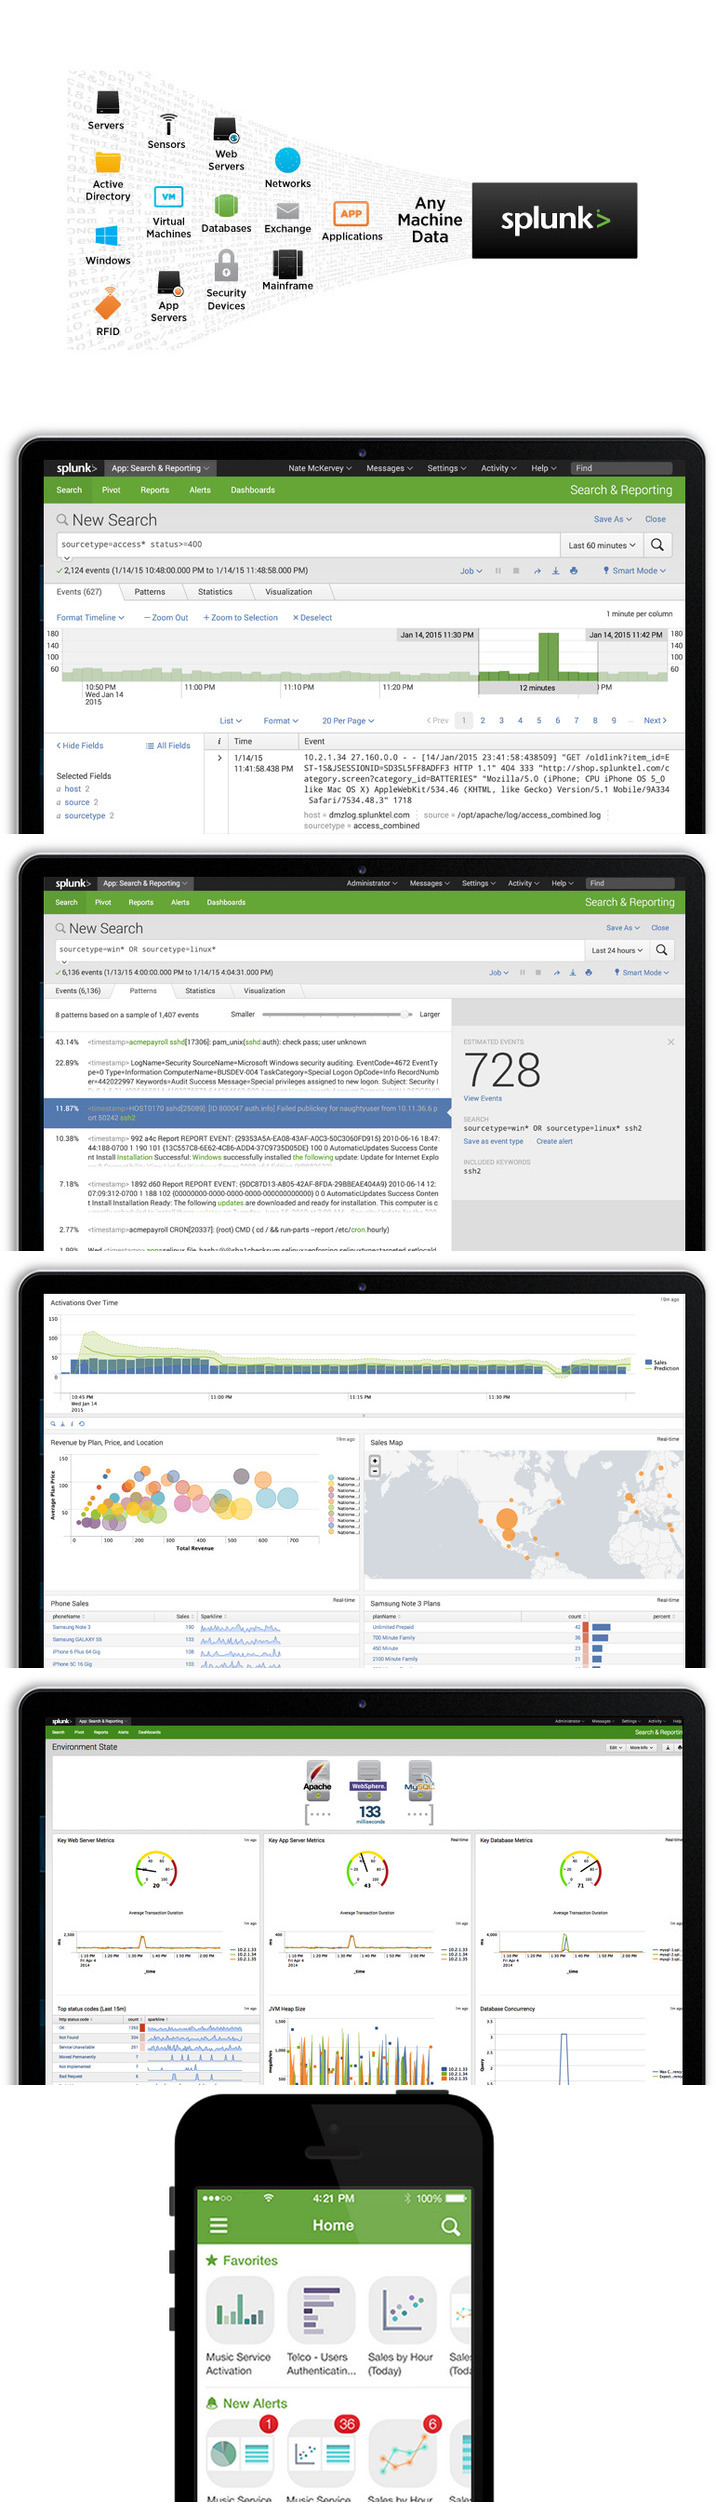 splunk_enterprise_642